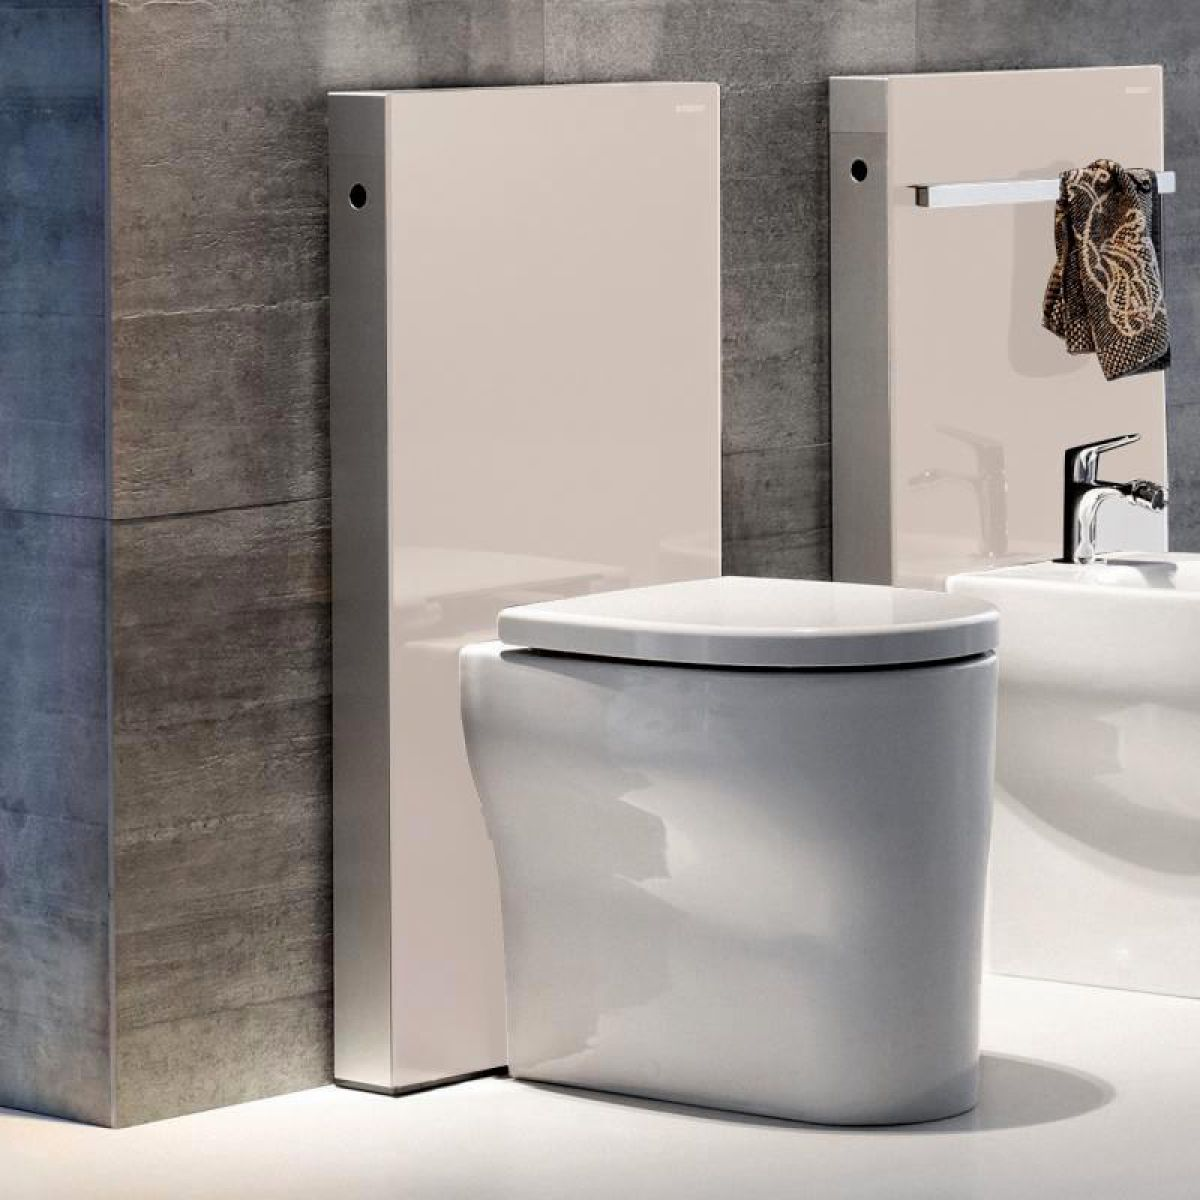 exceptional gerberit toilet #4: Geberit Monolith For Floor Standing Toilets